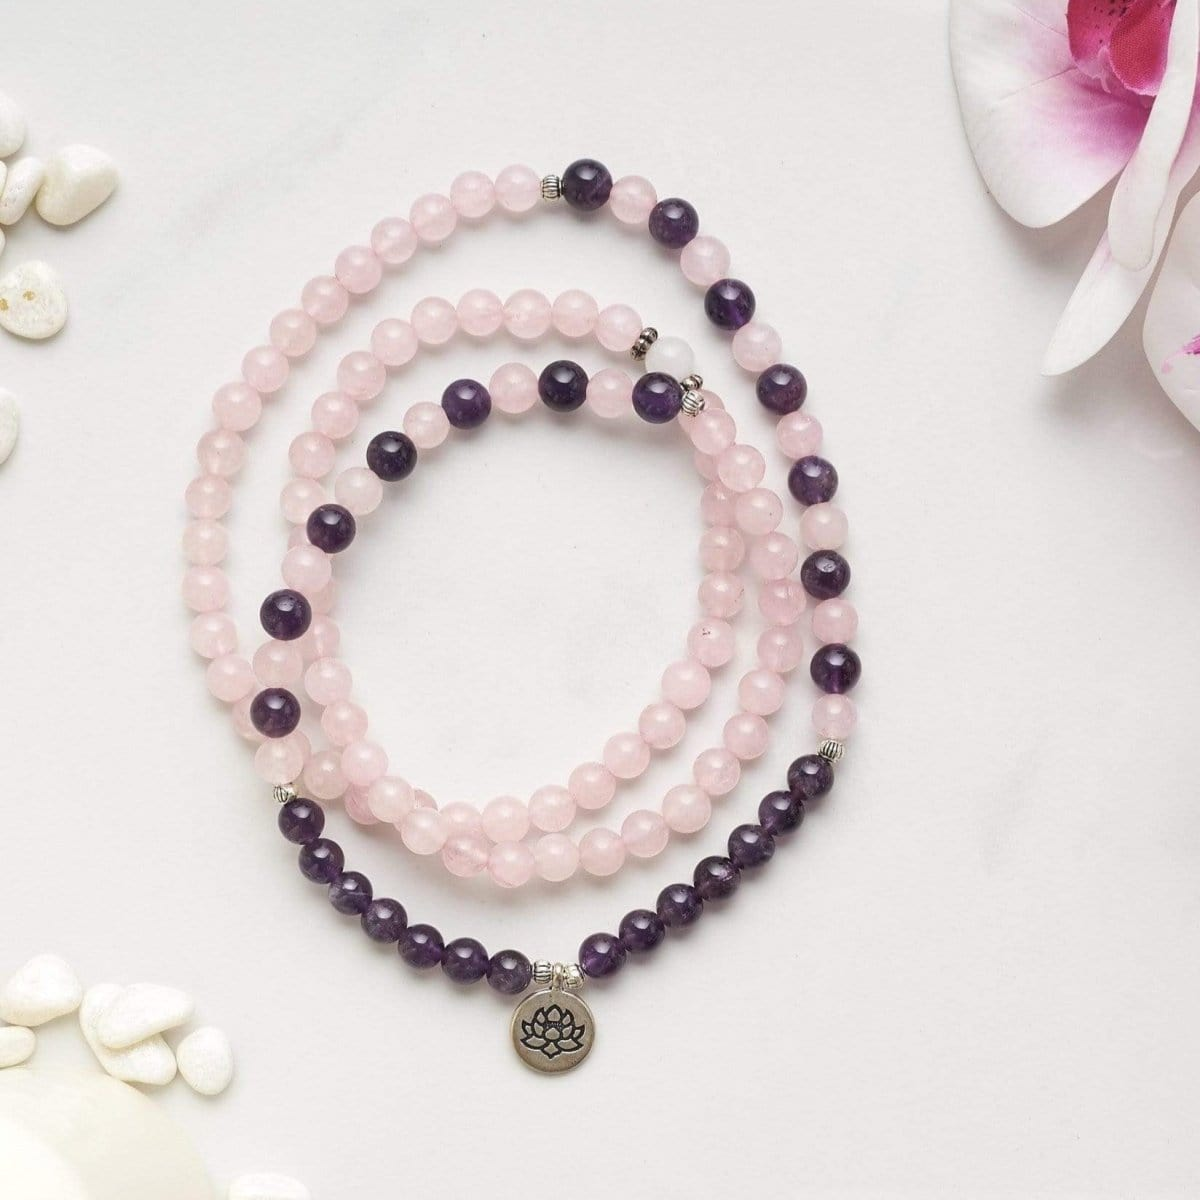 Natural Amethyst & Rose Quartz Lotus Mala - Prana Heart: Everyday Mindfulness